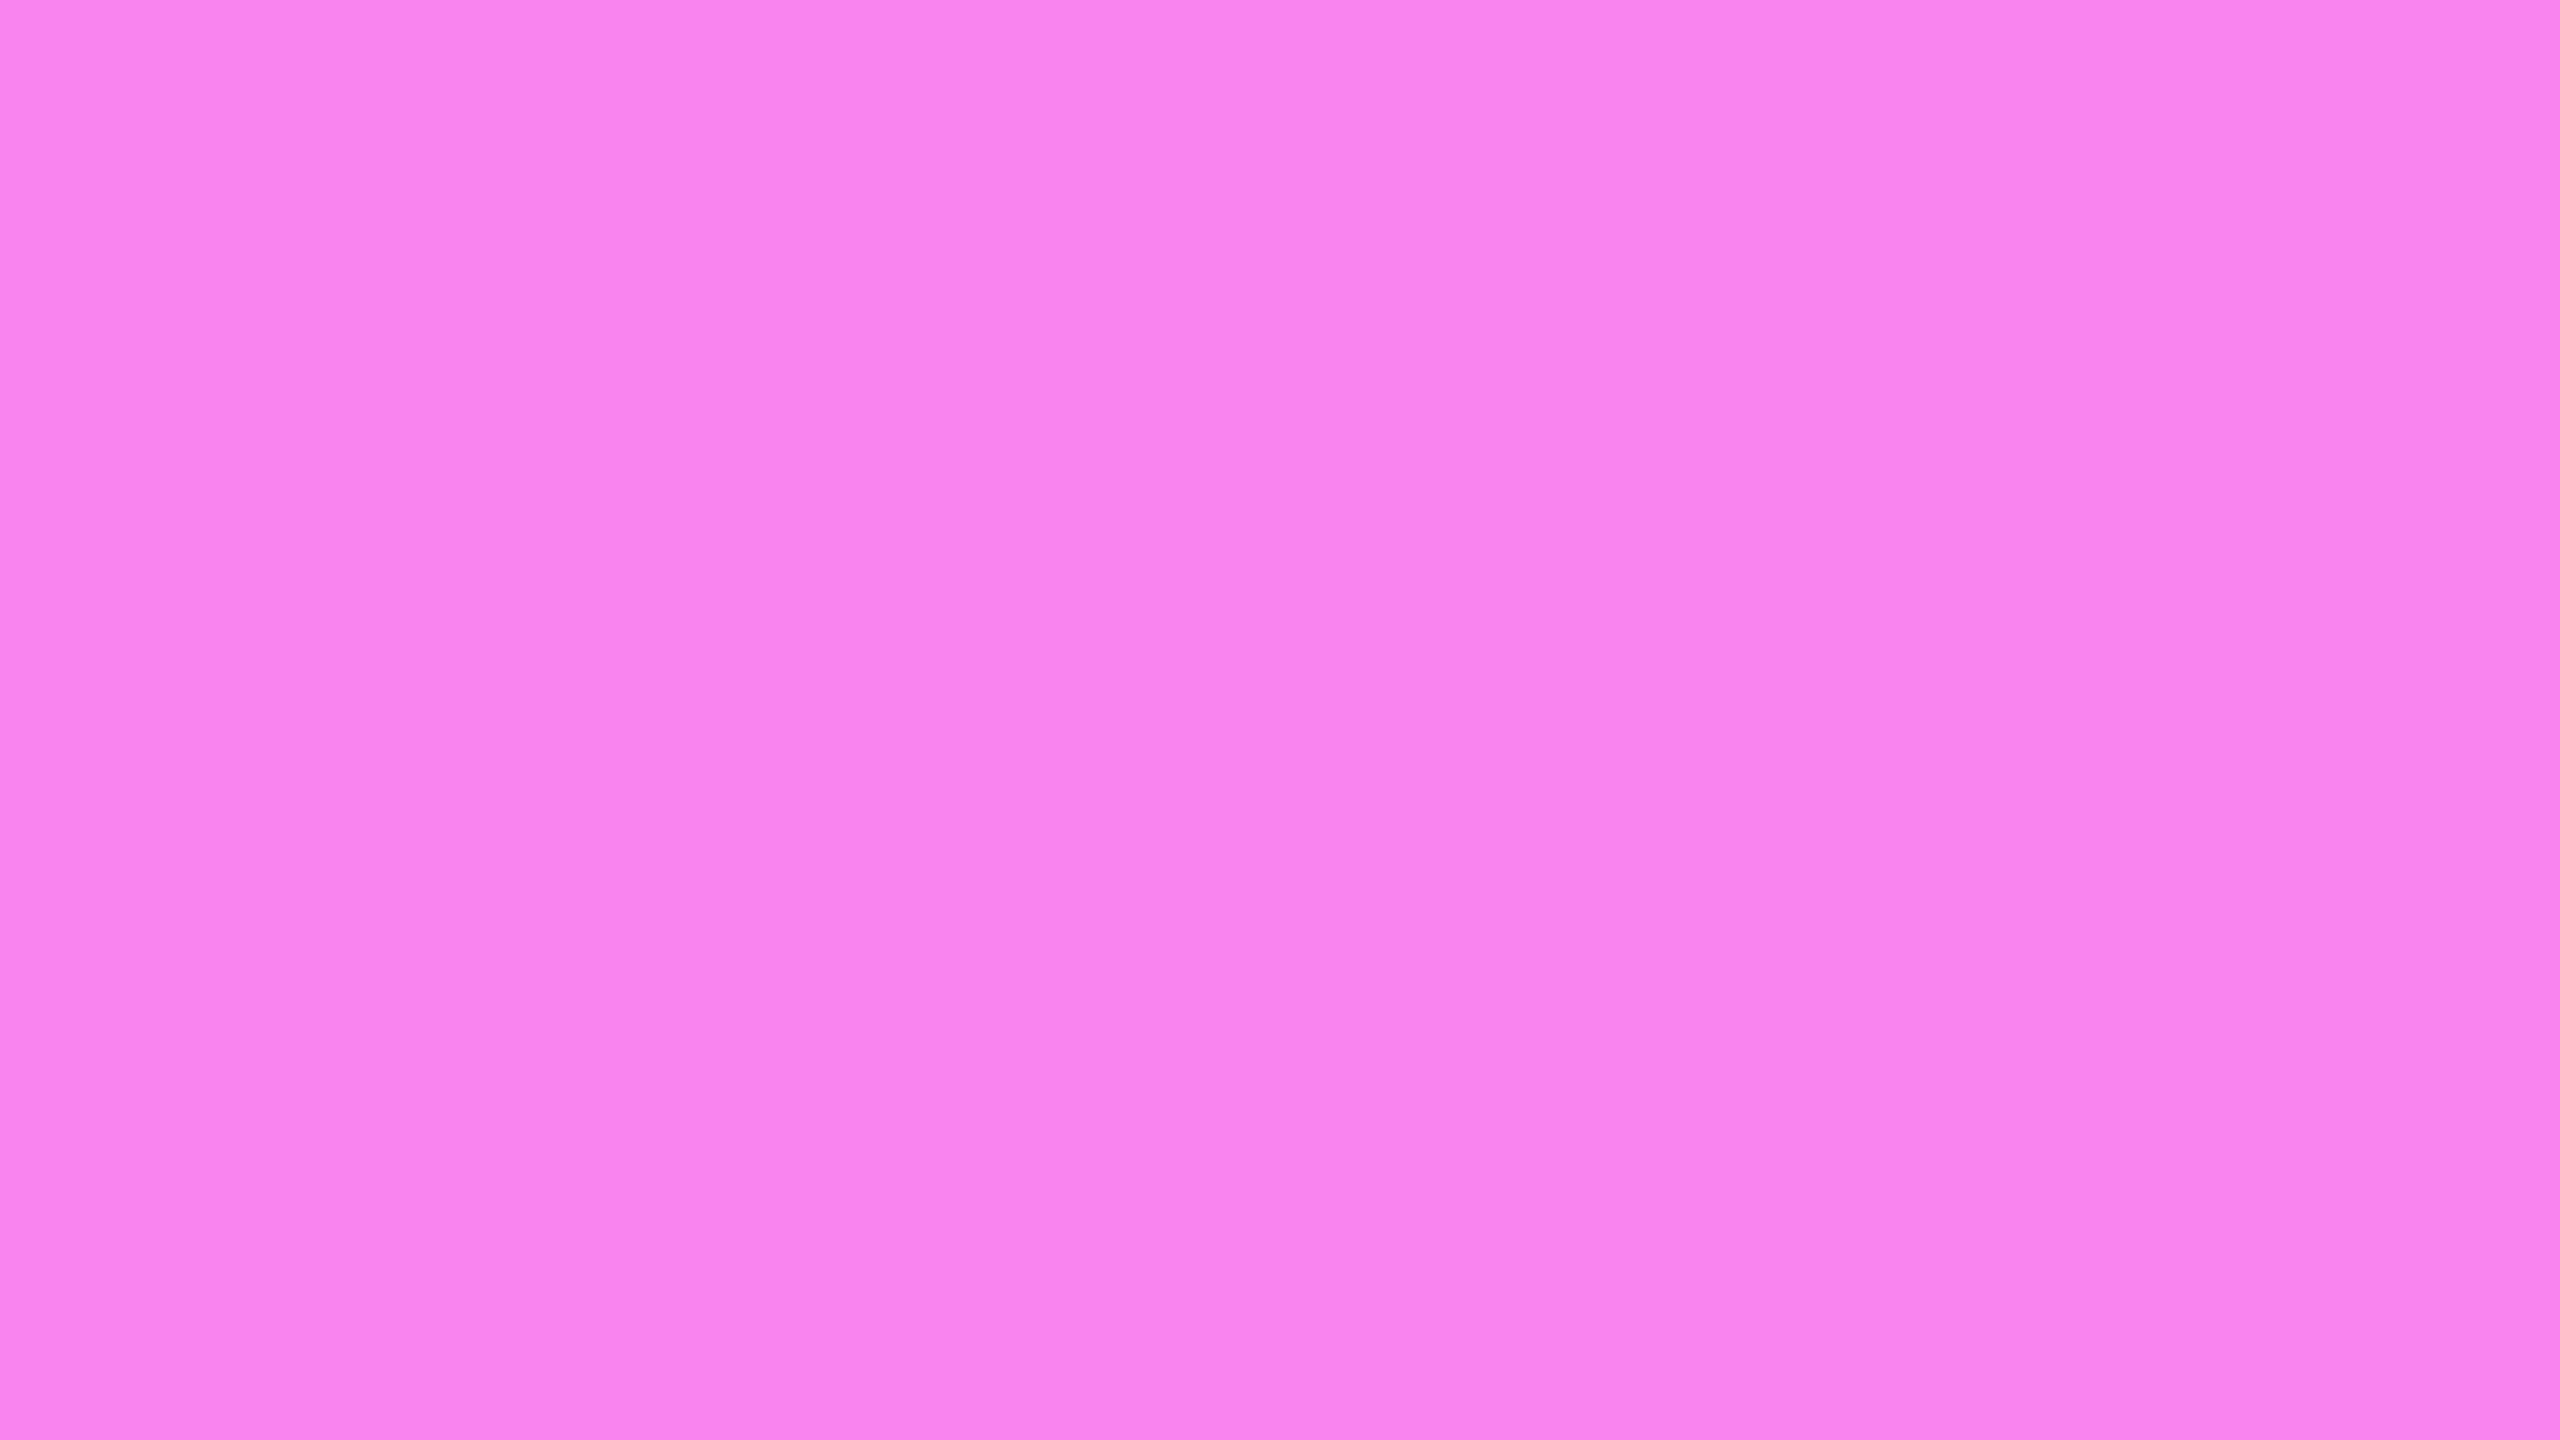 2560x1440 Light Fuchsia Pink Solid Color Background